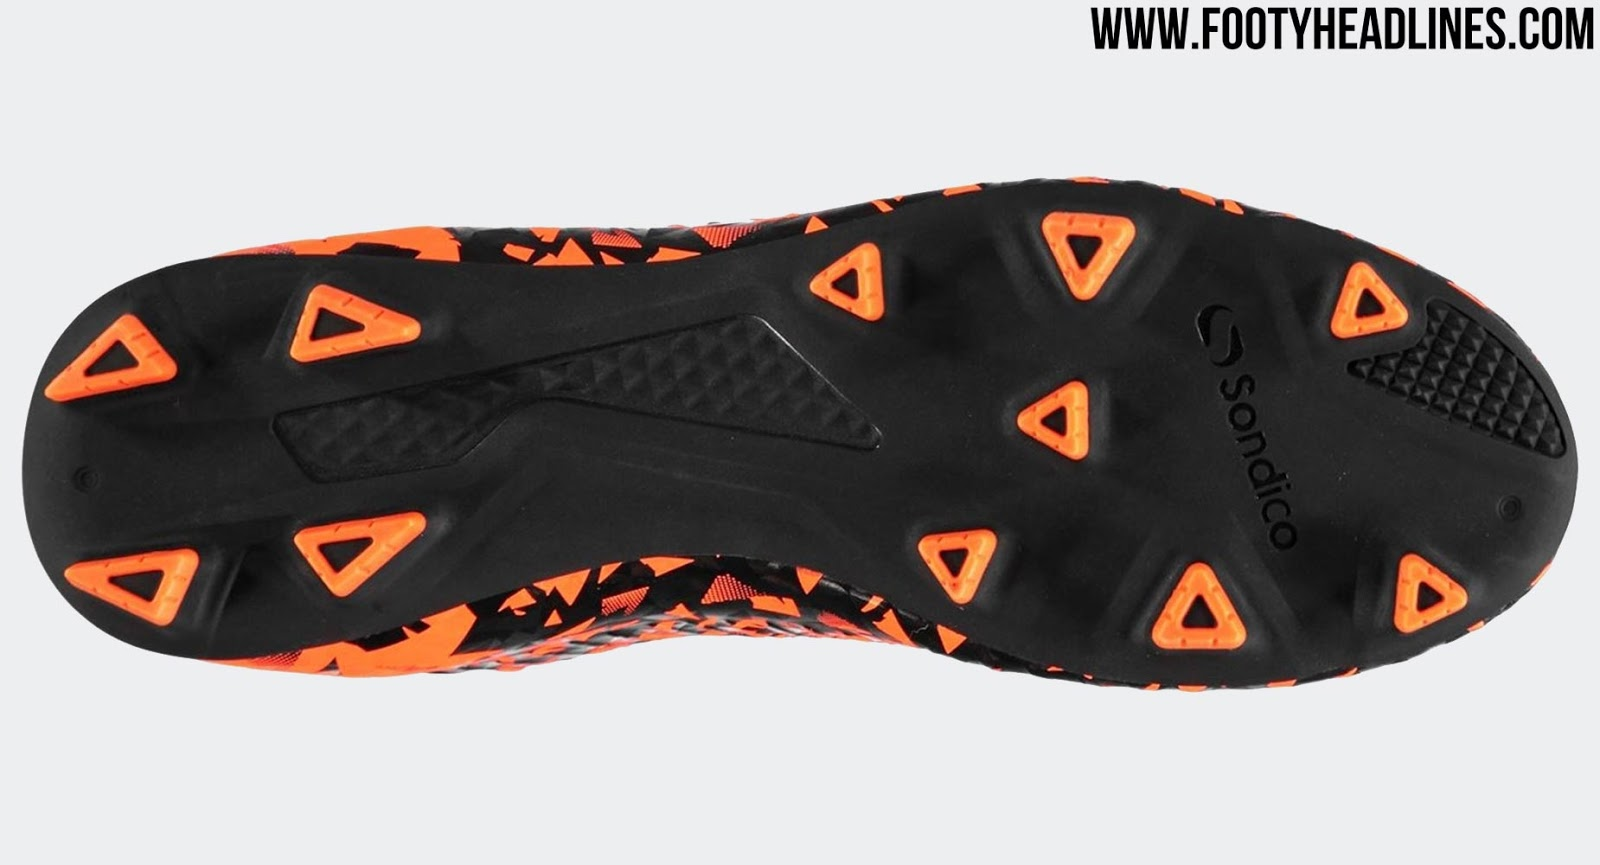 huge selection of b7b88 6bda4 SportsDirect Steals Nike Hypervenom Transform Boot Design ...